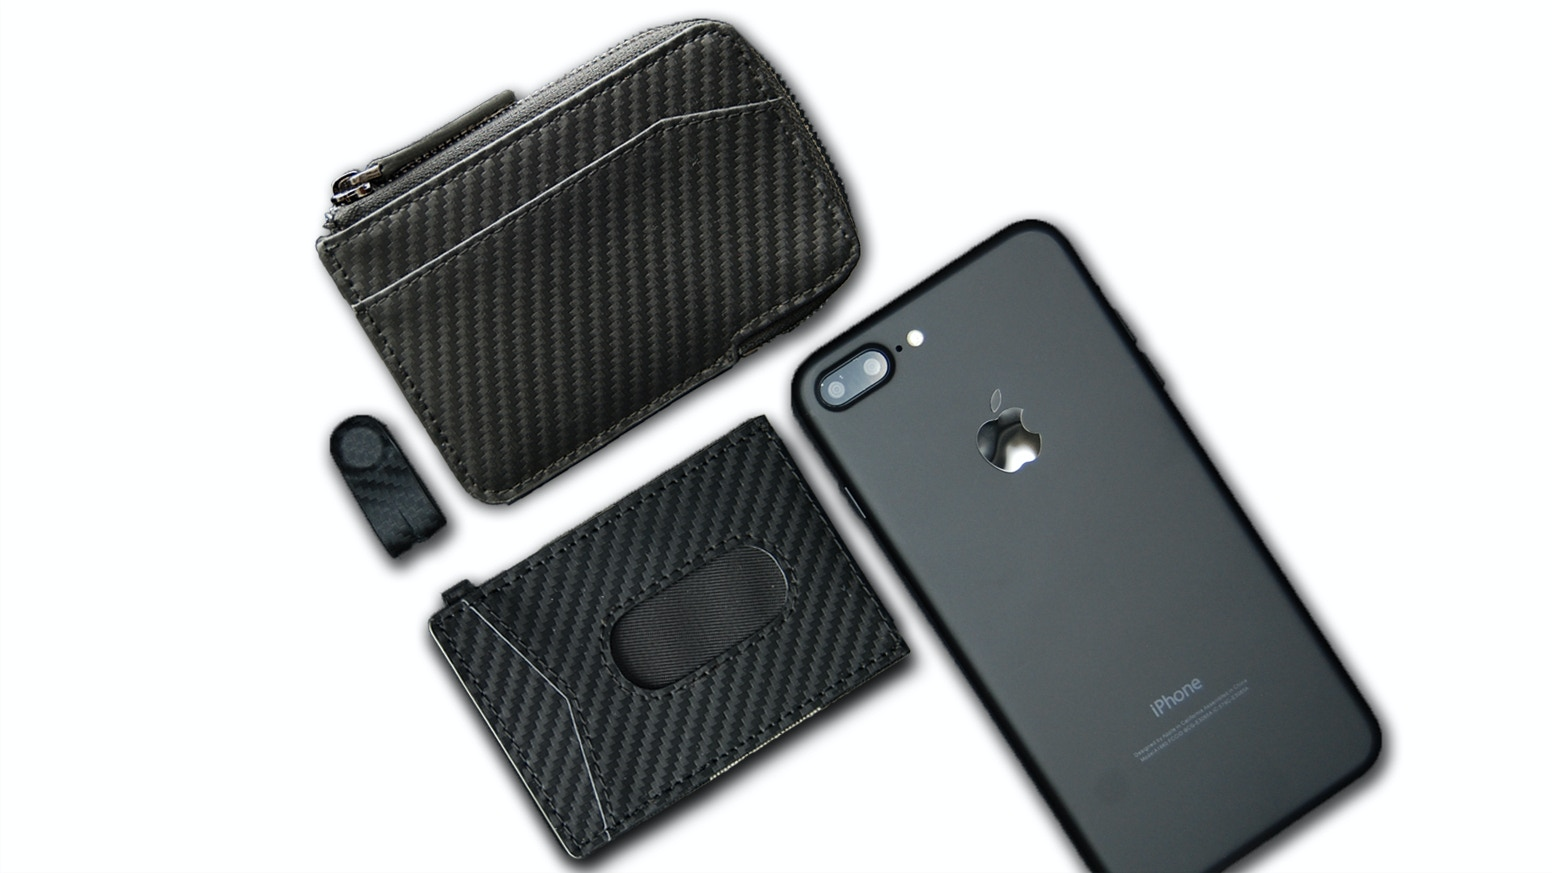 Simple and practical slim wallet with RFID blocking protection to keep your identity and data safe.